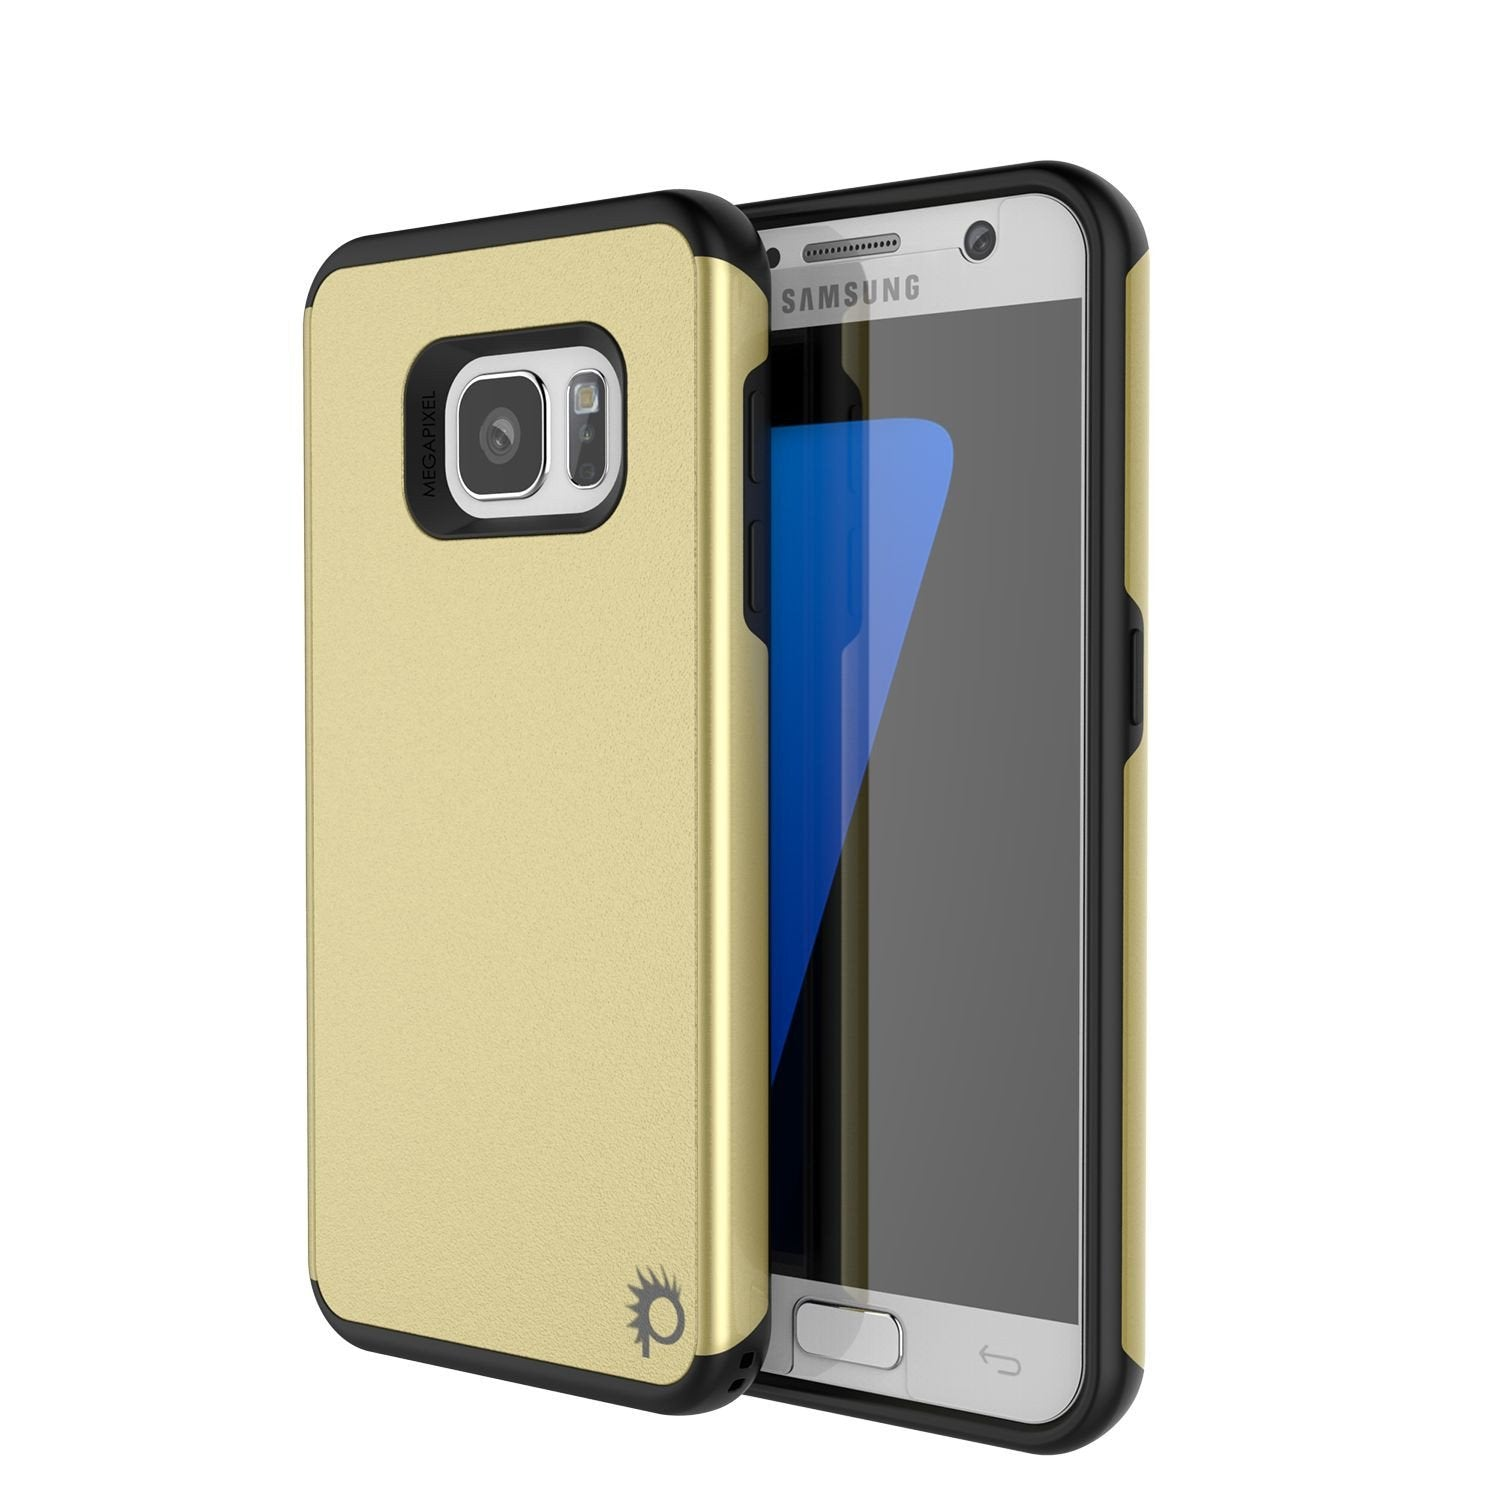 huge discount 5a782 a57dd Galaxy s7 Case PunkCase Galactic Gold Series Slim Armor Soft Cover Case w/  Tempered Glass